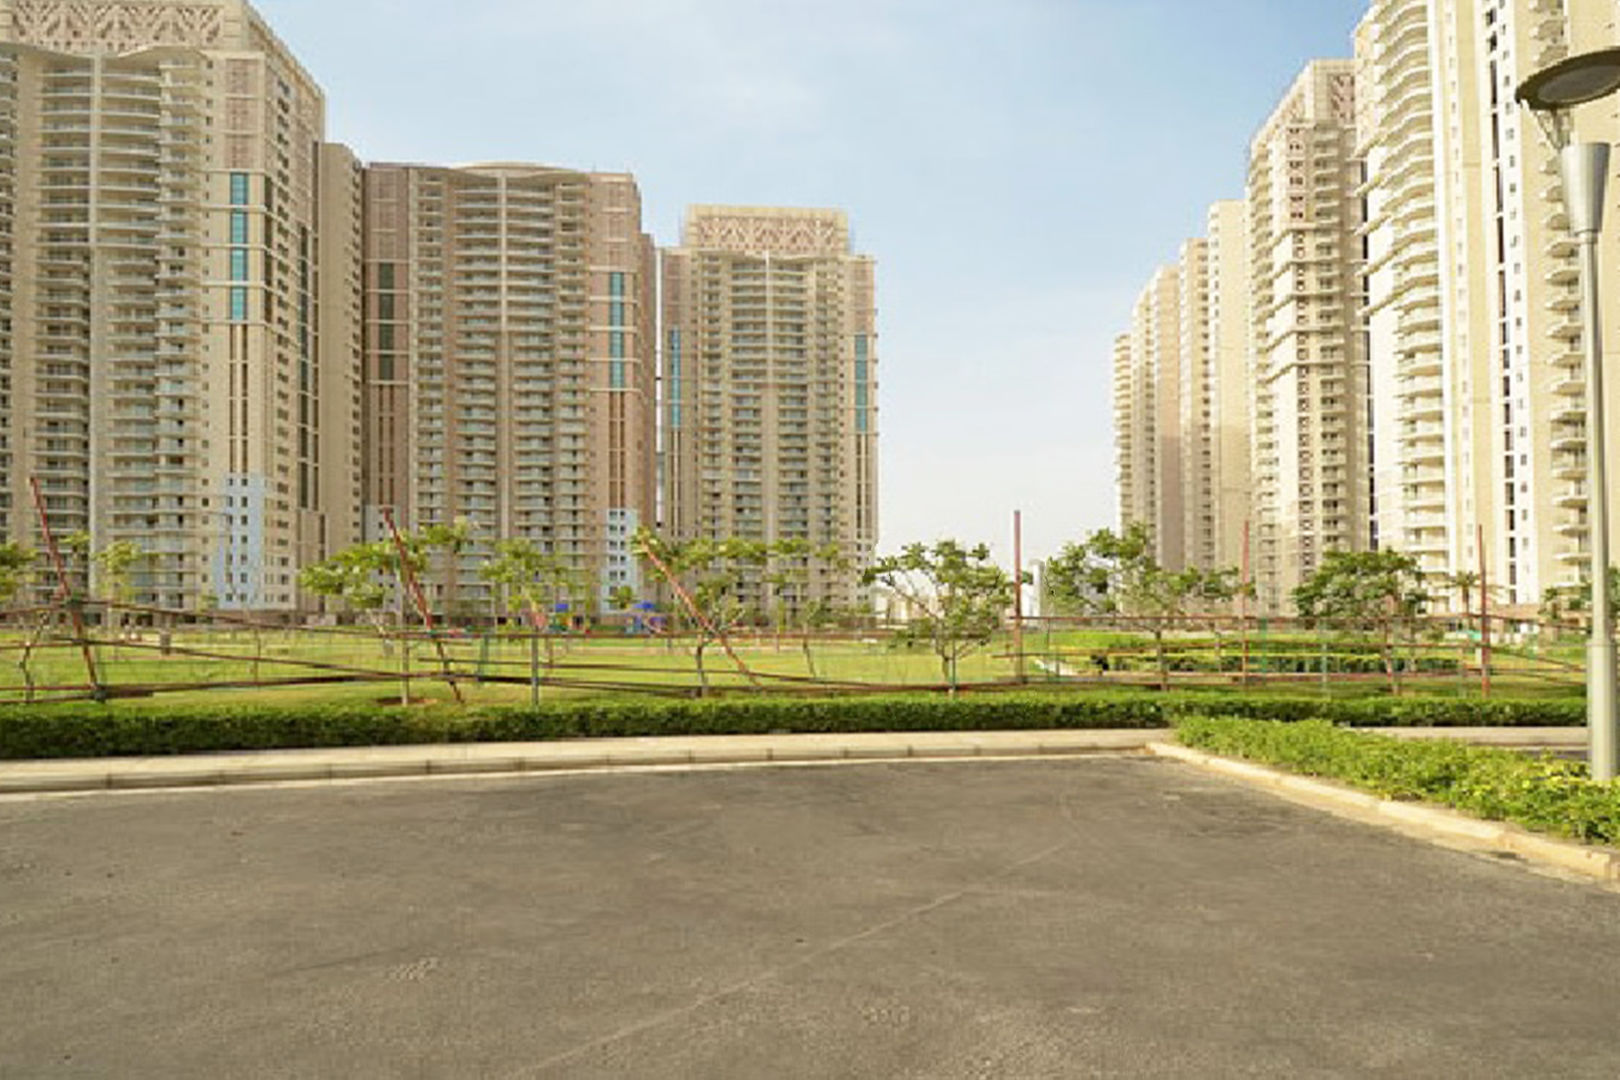 Residential Property in Gurgaon | Luxury Apartments for Rent & Sale in Gurgaon